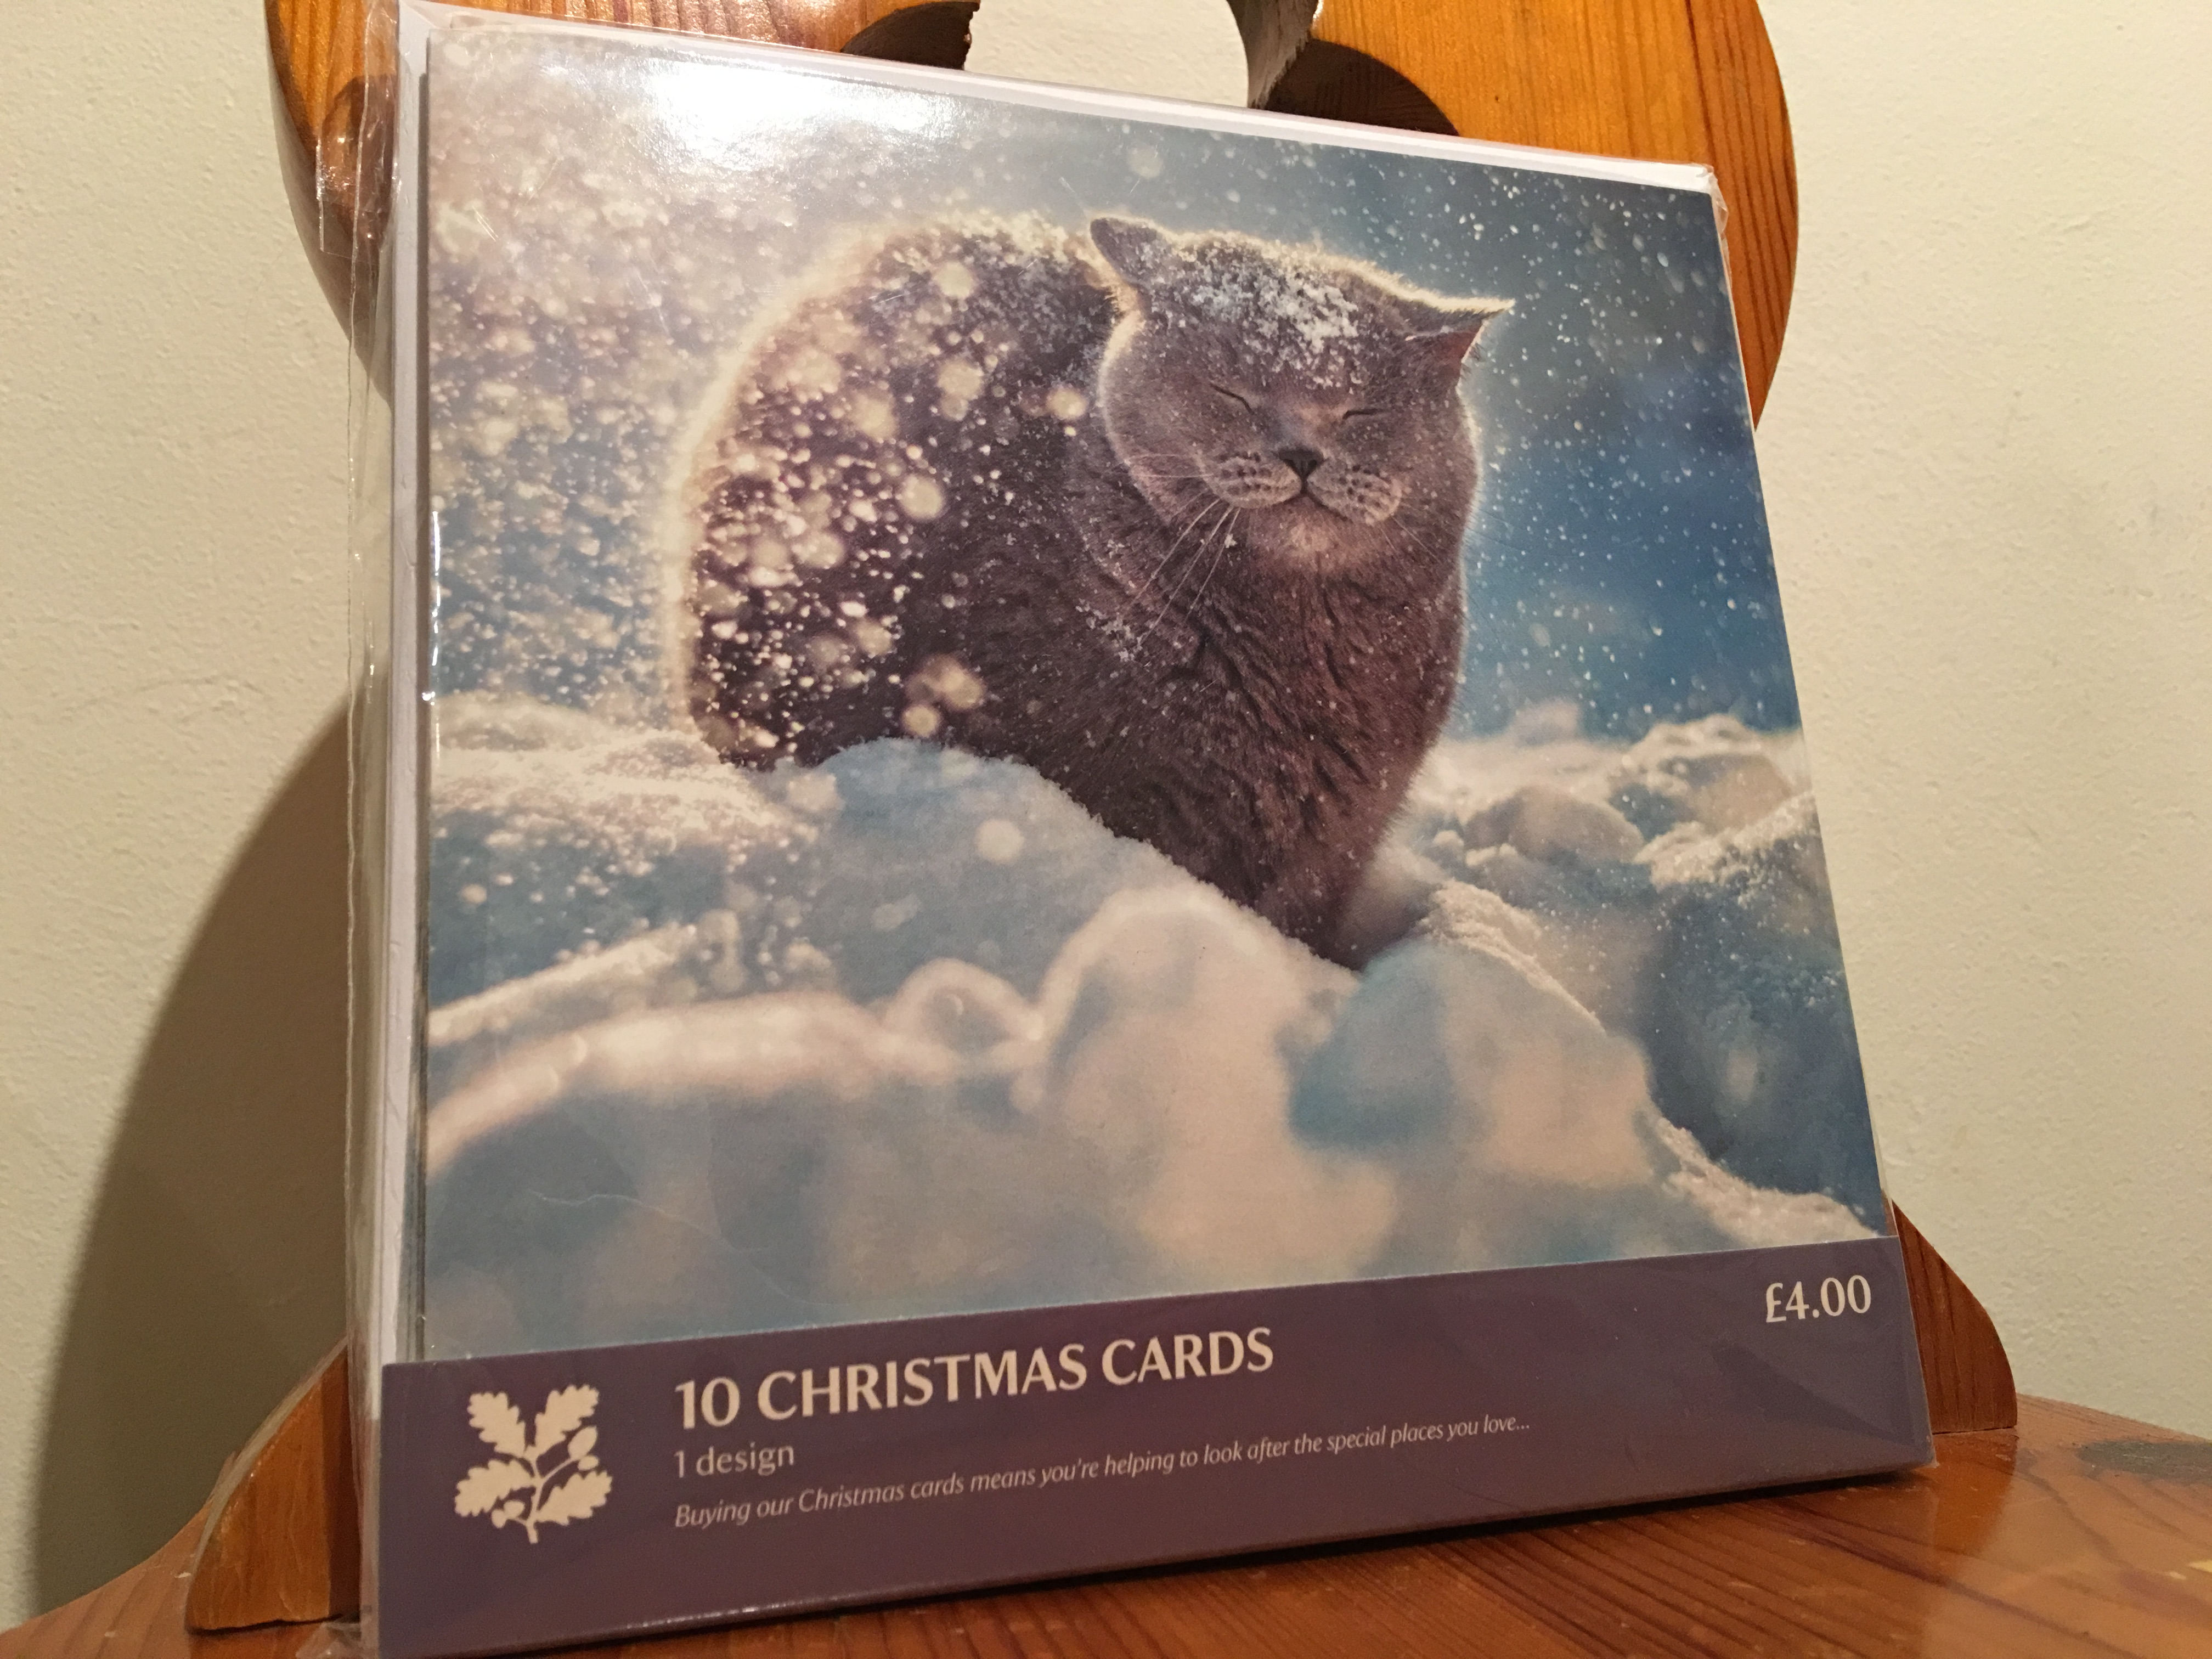 Greetings cards birthday cards christmas cards blank cards national trust british short hair cat in the snow christmas cards 2015 made in the kristyandbryce Gallery